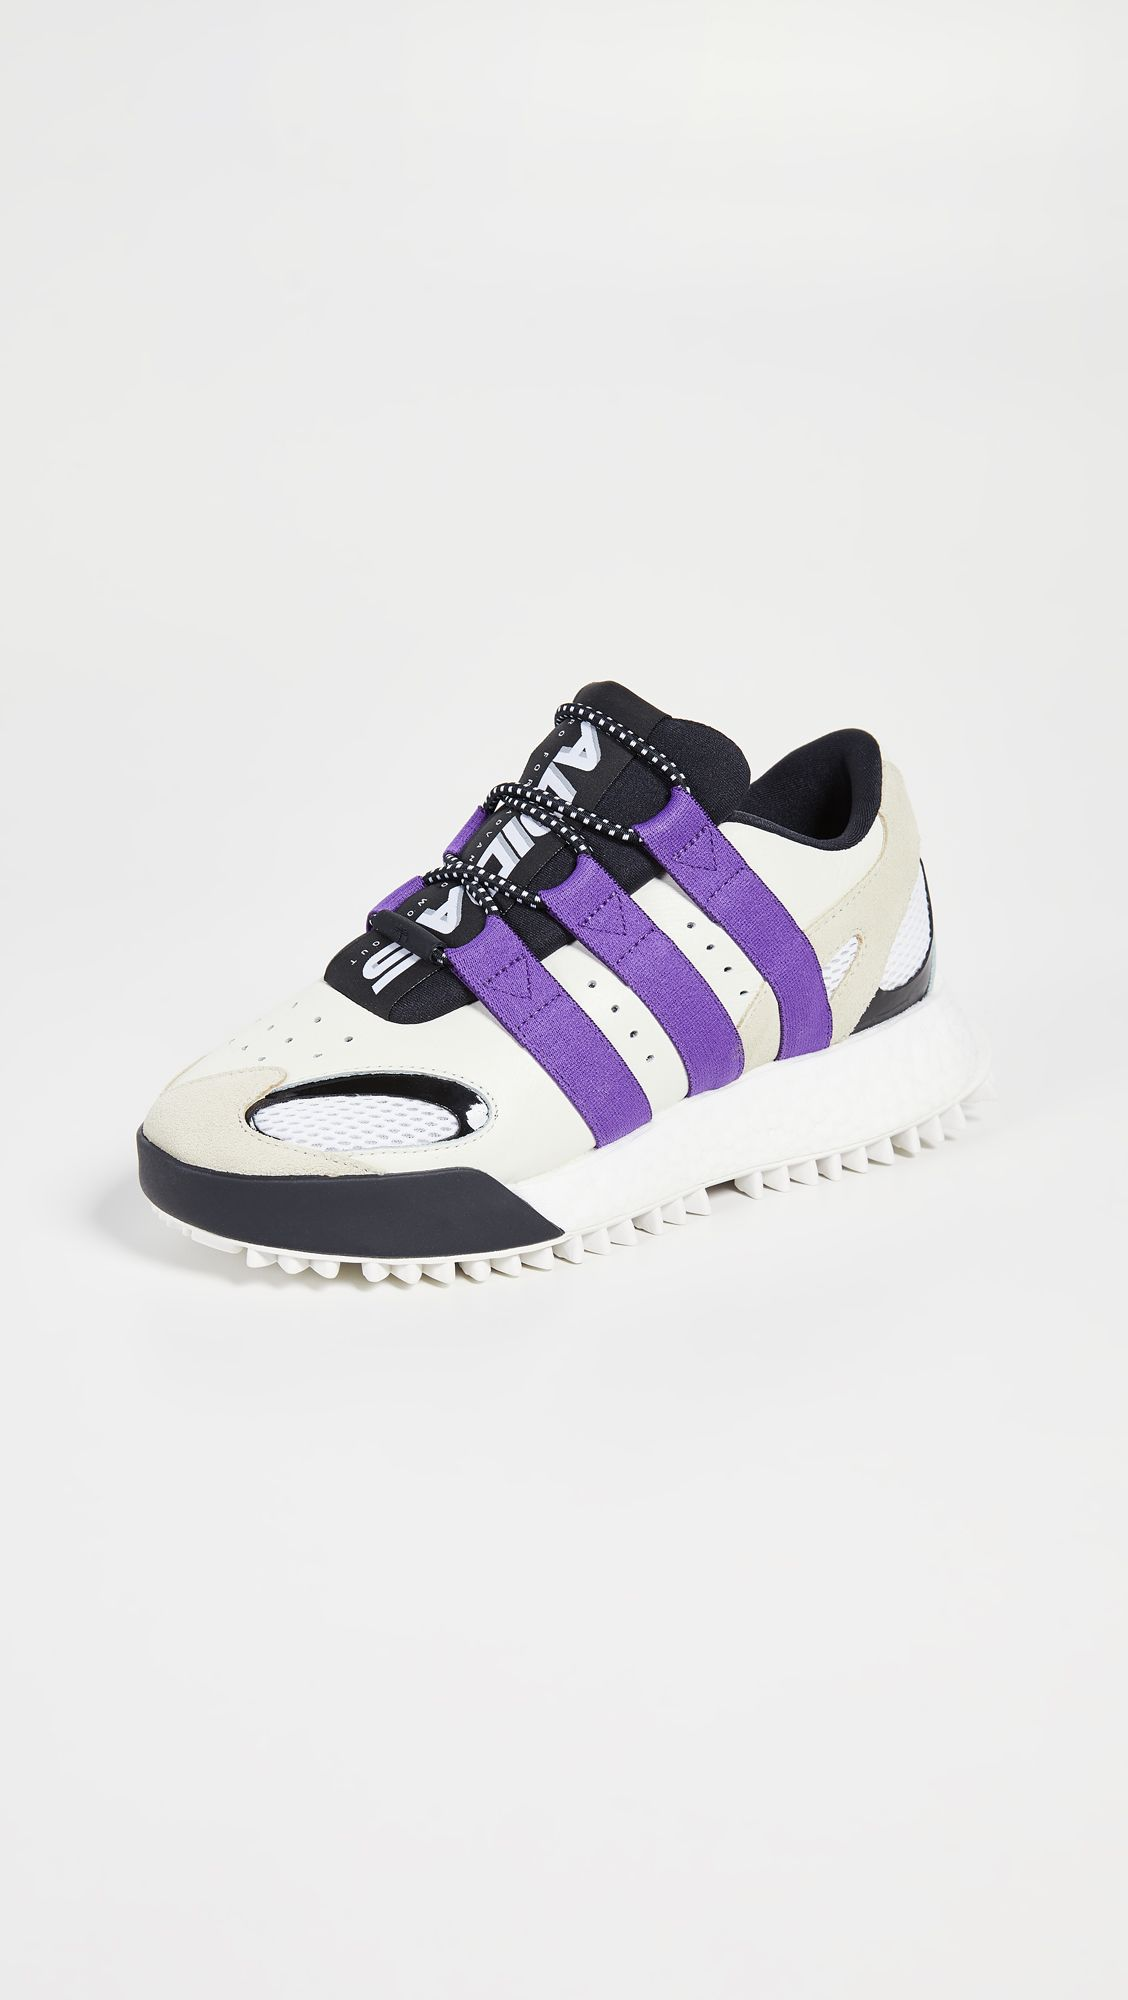 Caso cine Elástico  adidas Originals by Alexander Wang AW Wangbody Run Sneakers | SHOPBOP in  2020 | Sneakers, Adidas, Adidas originals